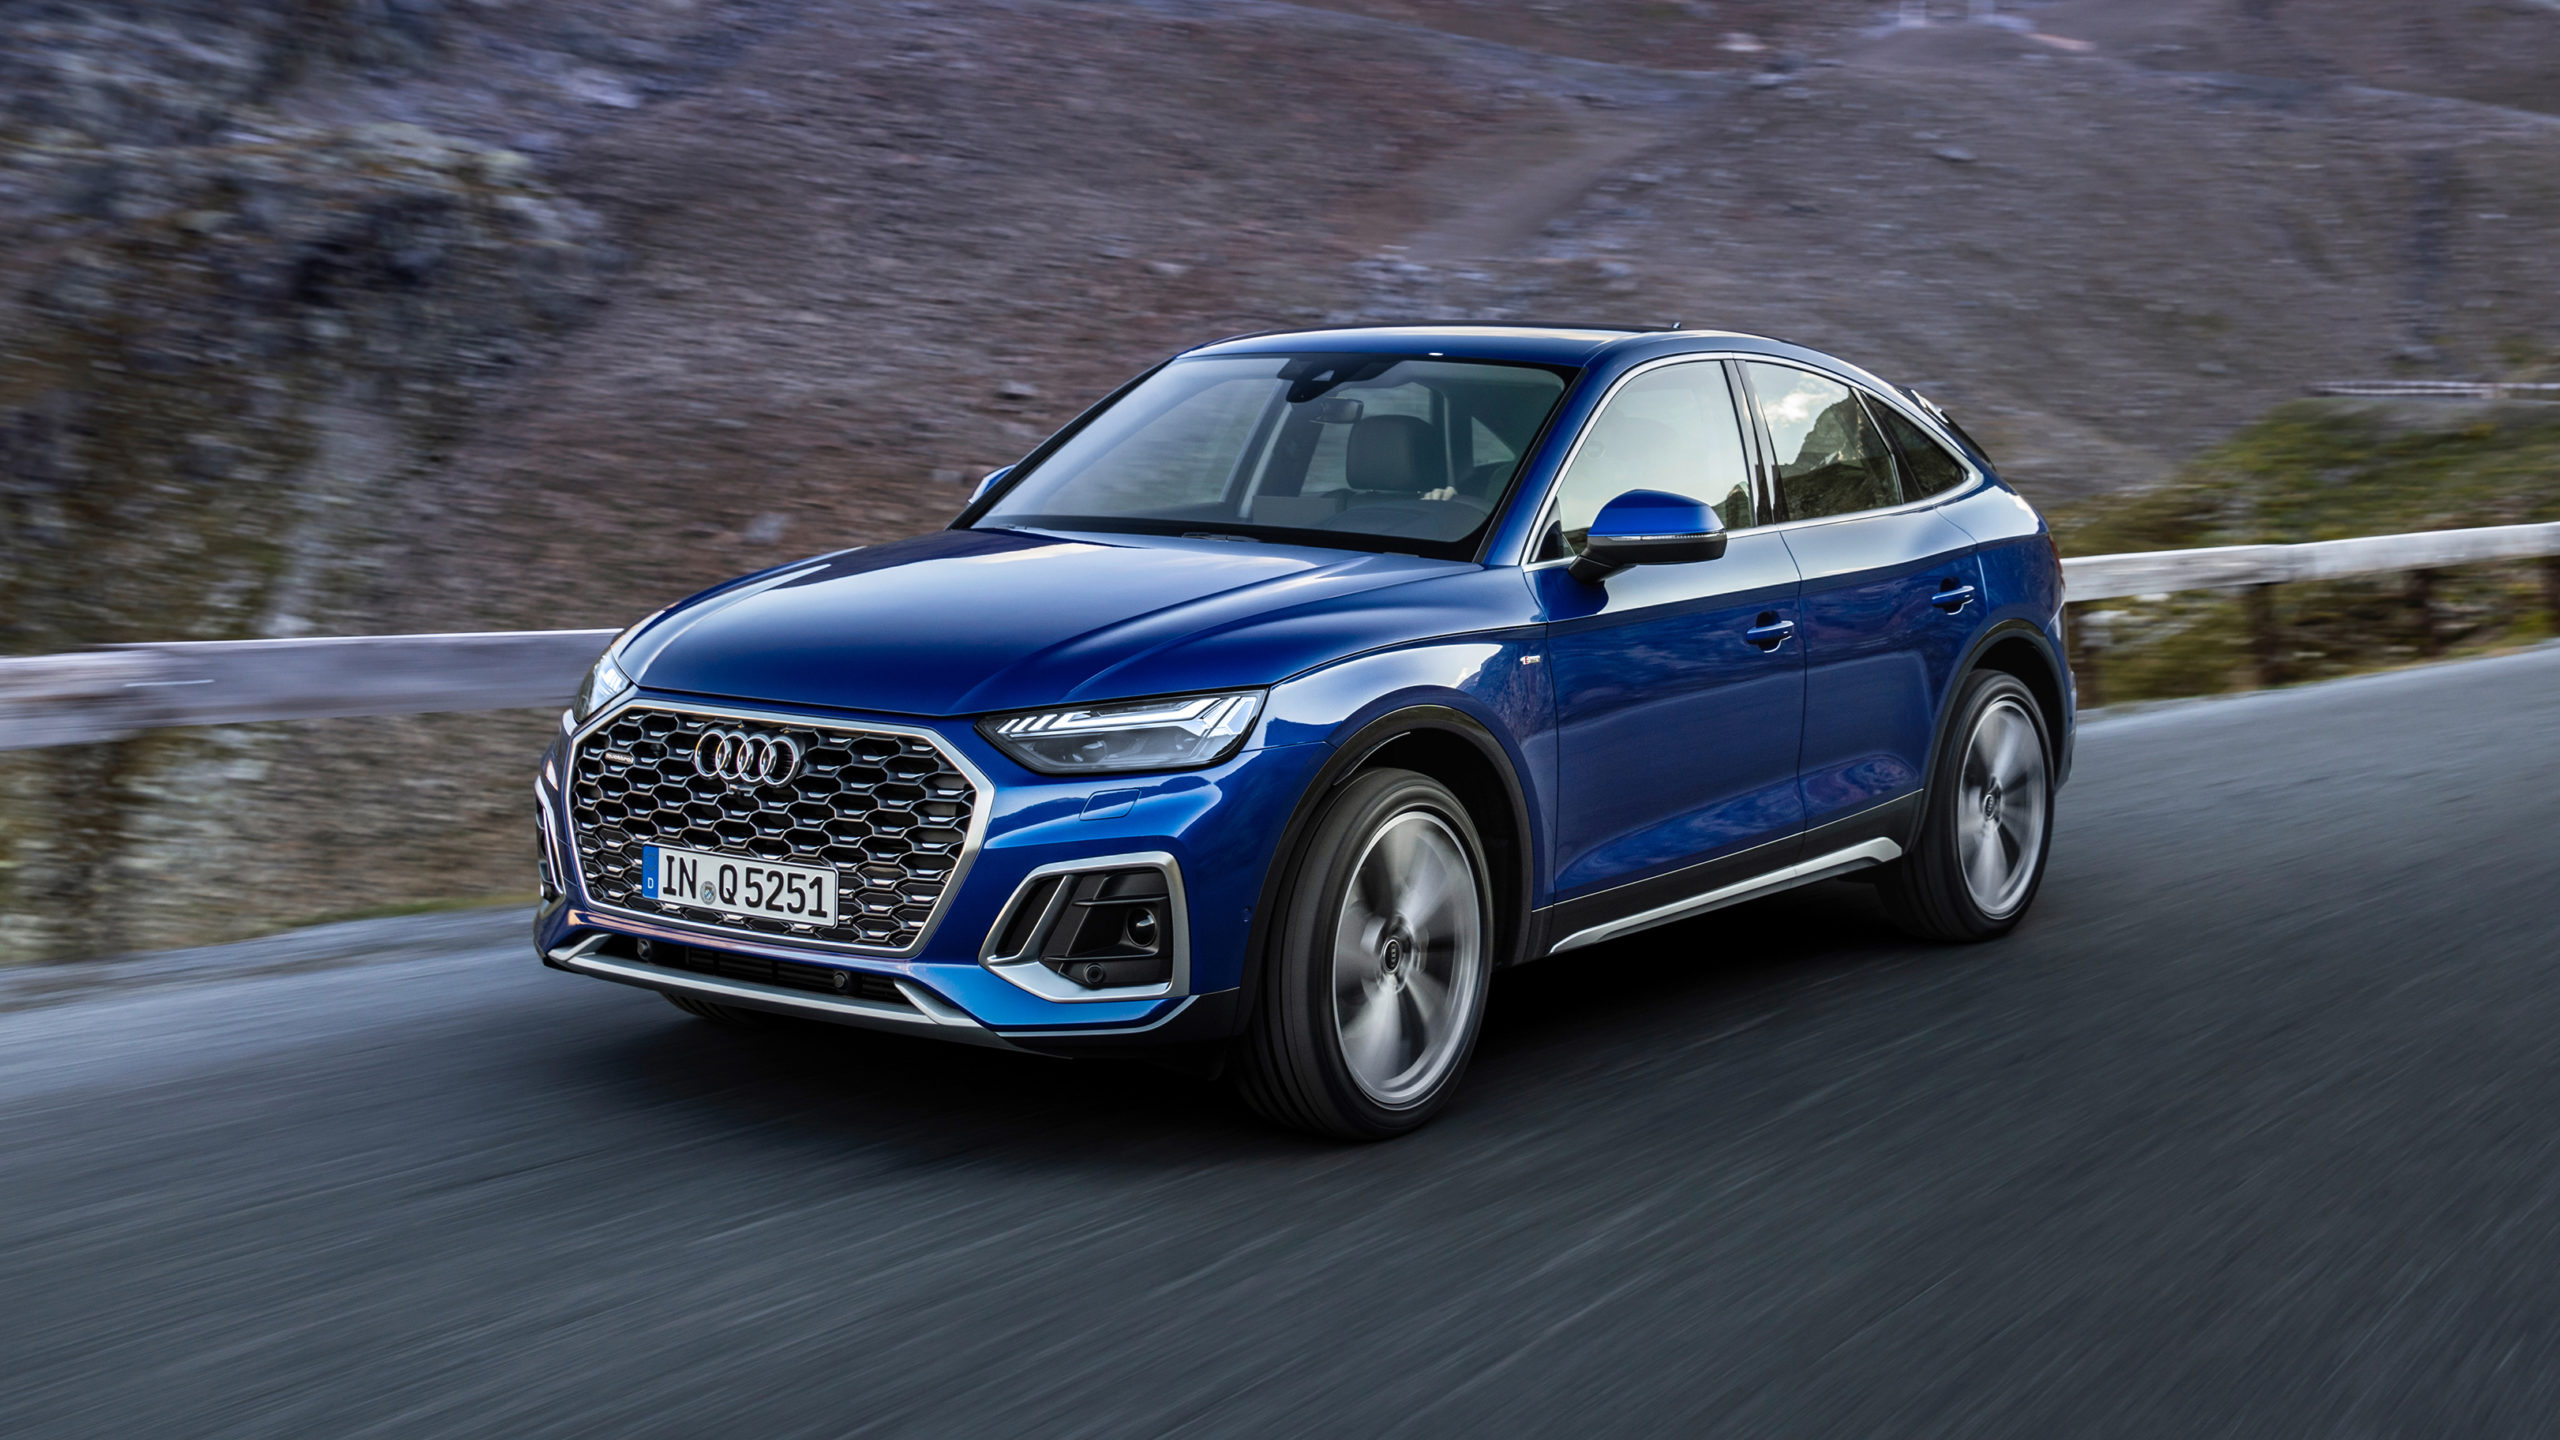 2021 Audi Q5 Sportback Is More Expensive Than Standard Model